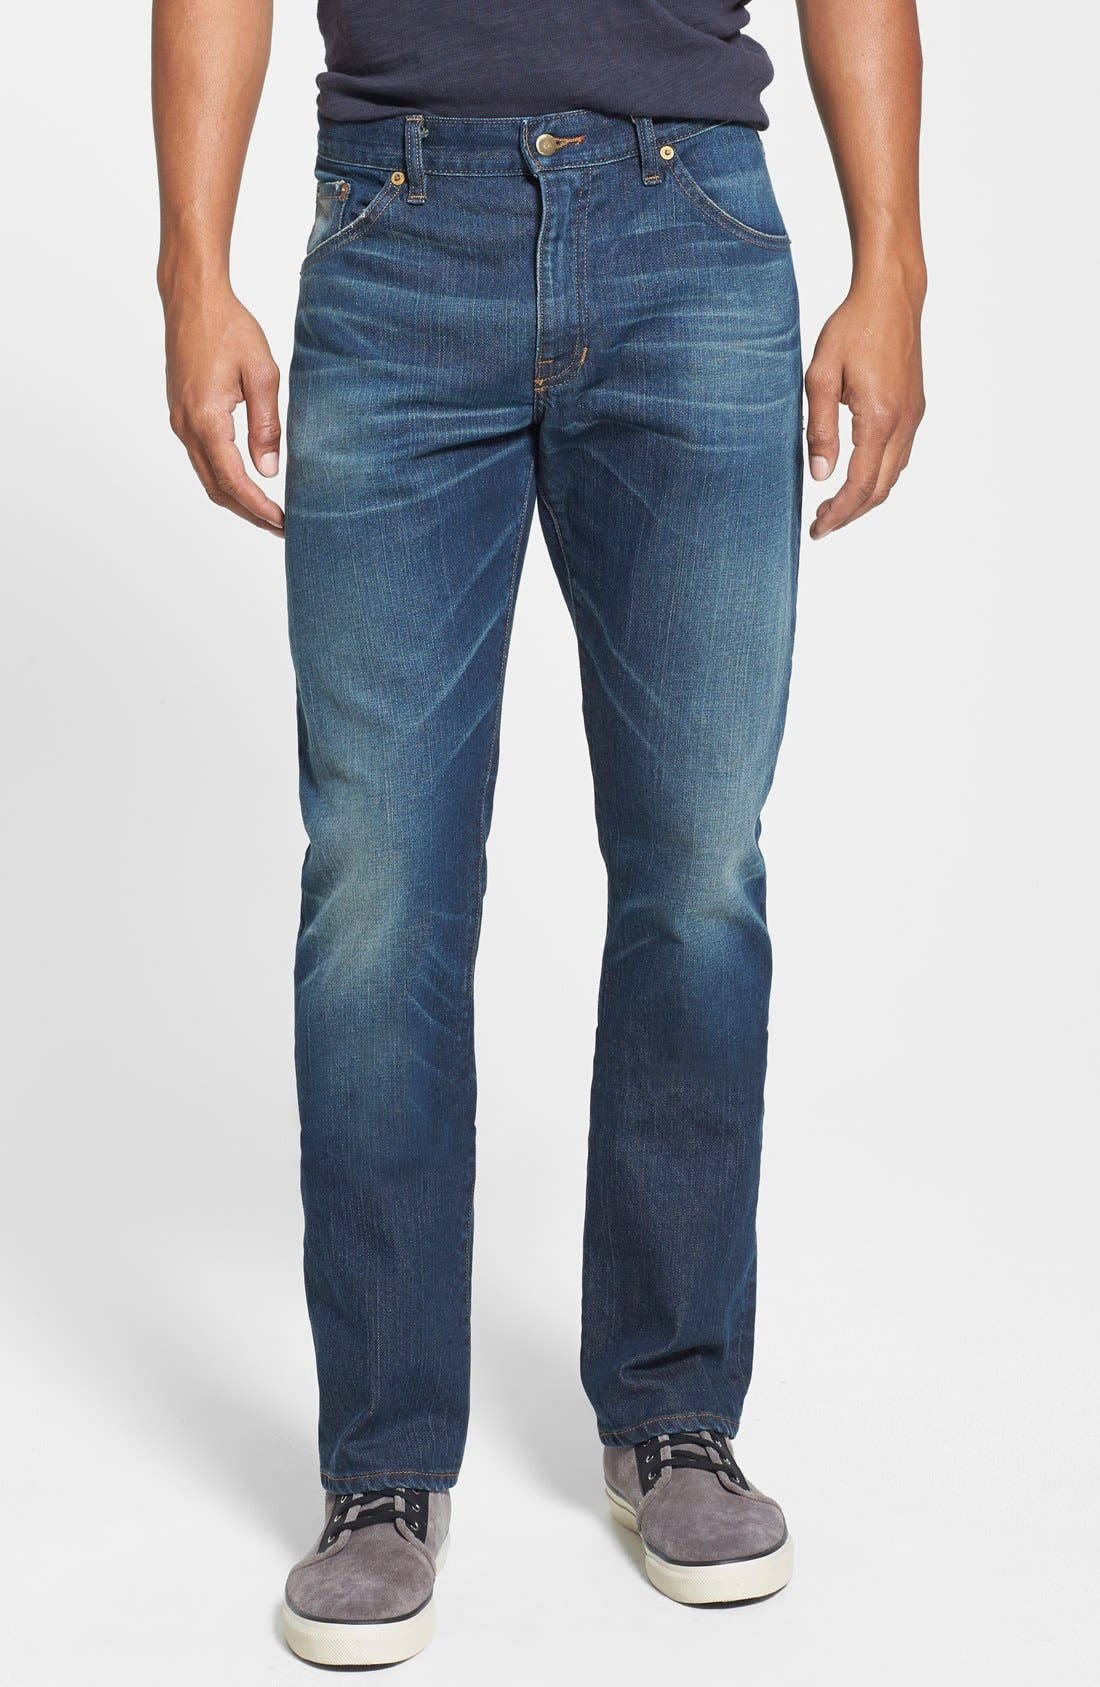 'Jones' Slim Straight Fit Jeans,                         Main,                         color, CAMP